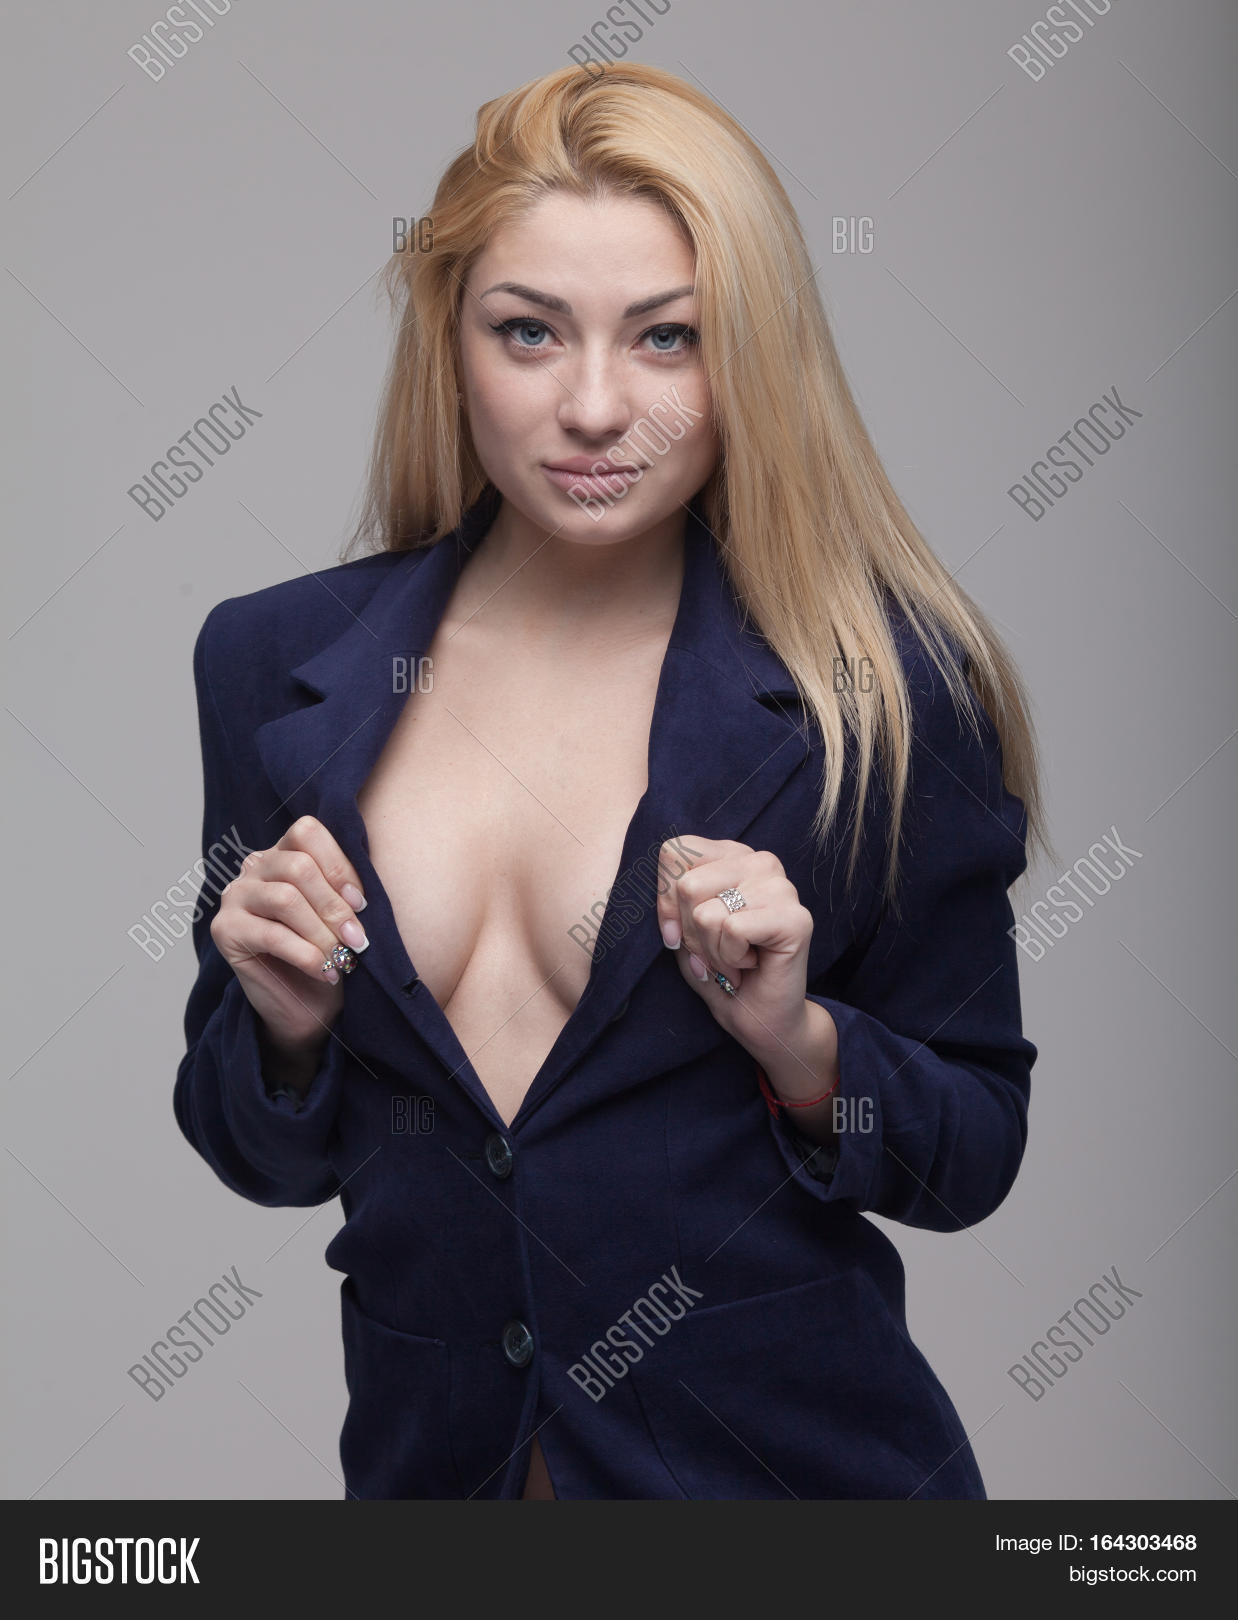 Boobs sexy woman This Woman